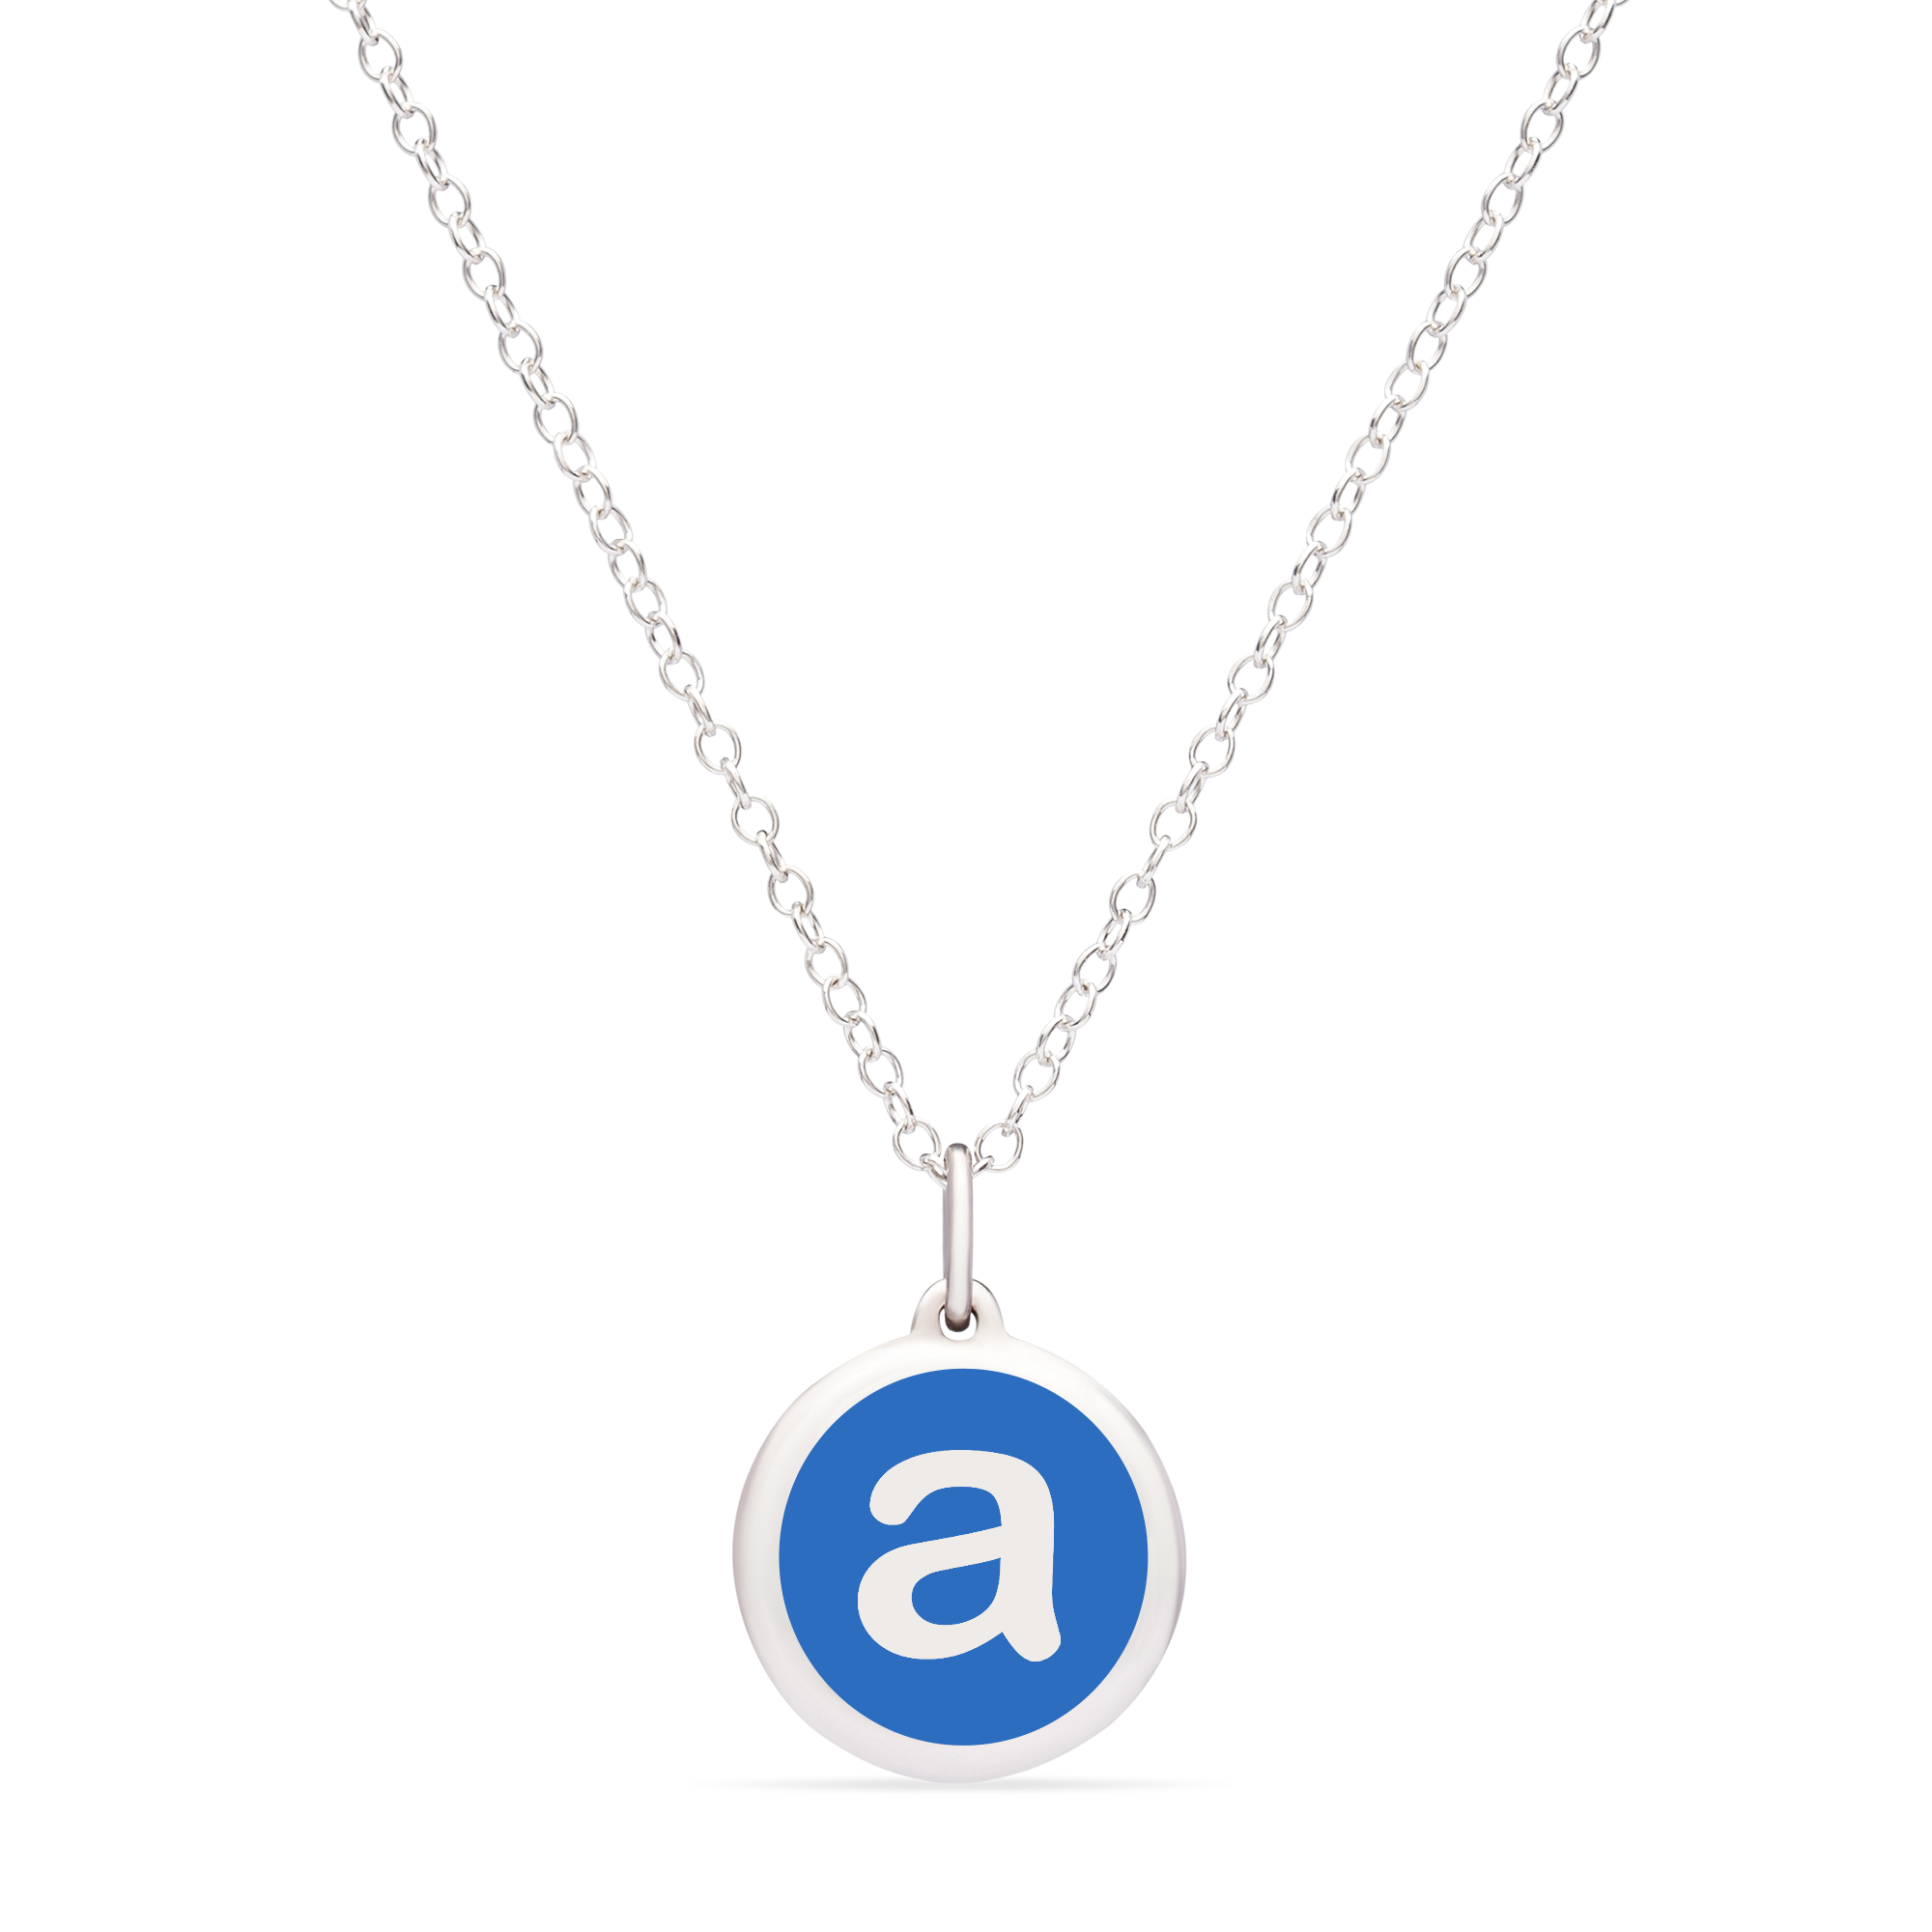 MINI INITIAL 'a' CHARM sterling silver with rhodium plate